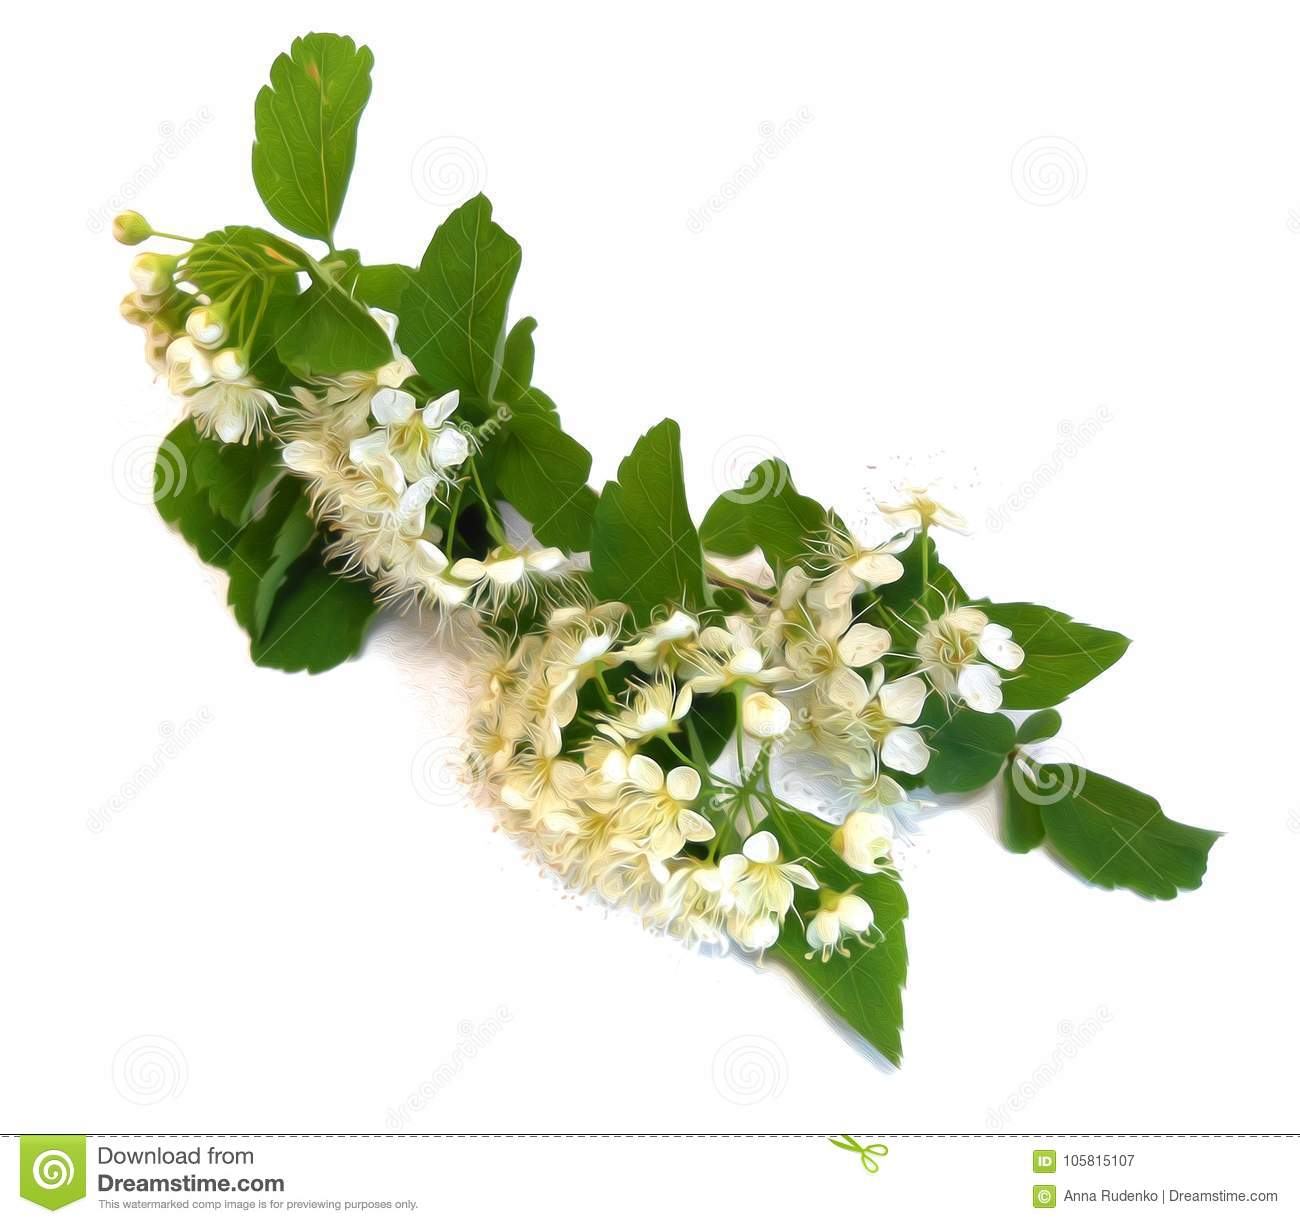 White Bird Cherry Branch Isolated Flower Photo Manipulation